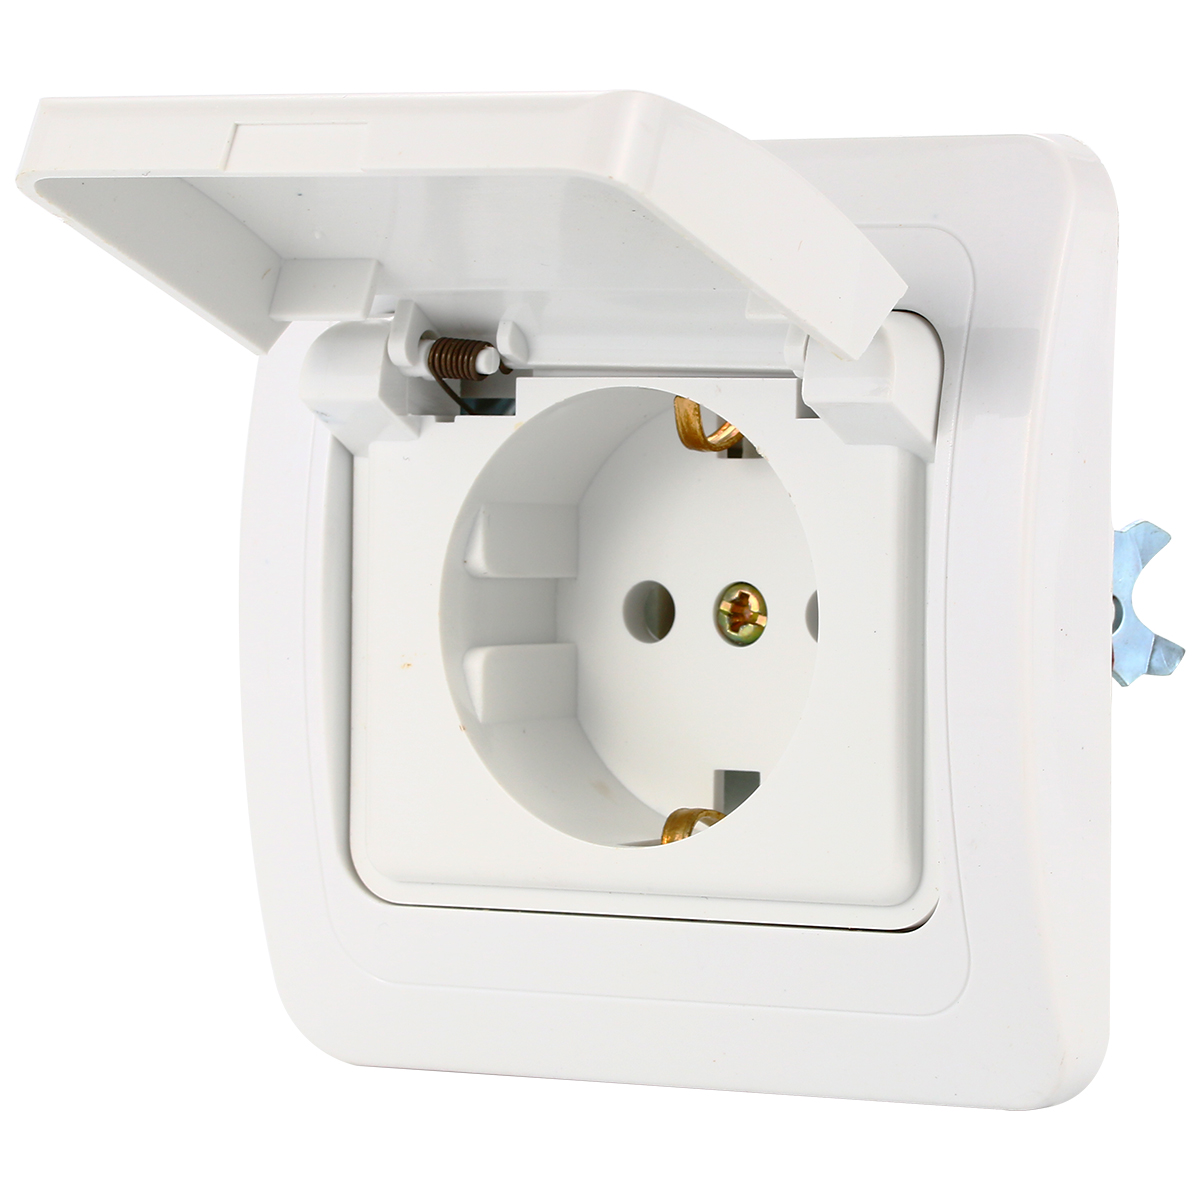 medium resolution of 16a 250v korea wiring receptacle power outlet schuko germany16a 250v korea wiring receptacle power outlet schuko